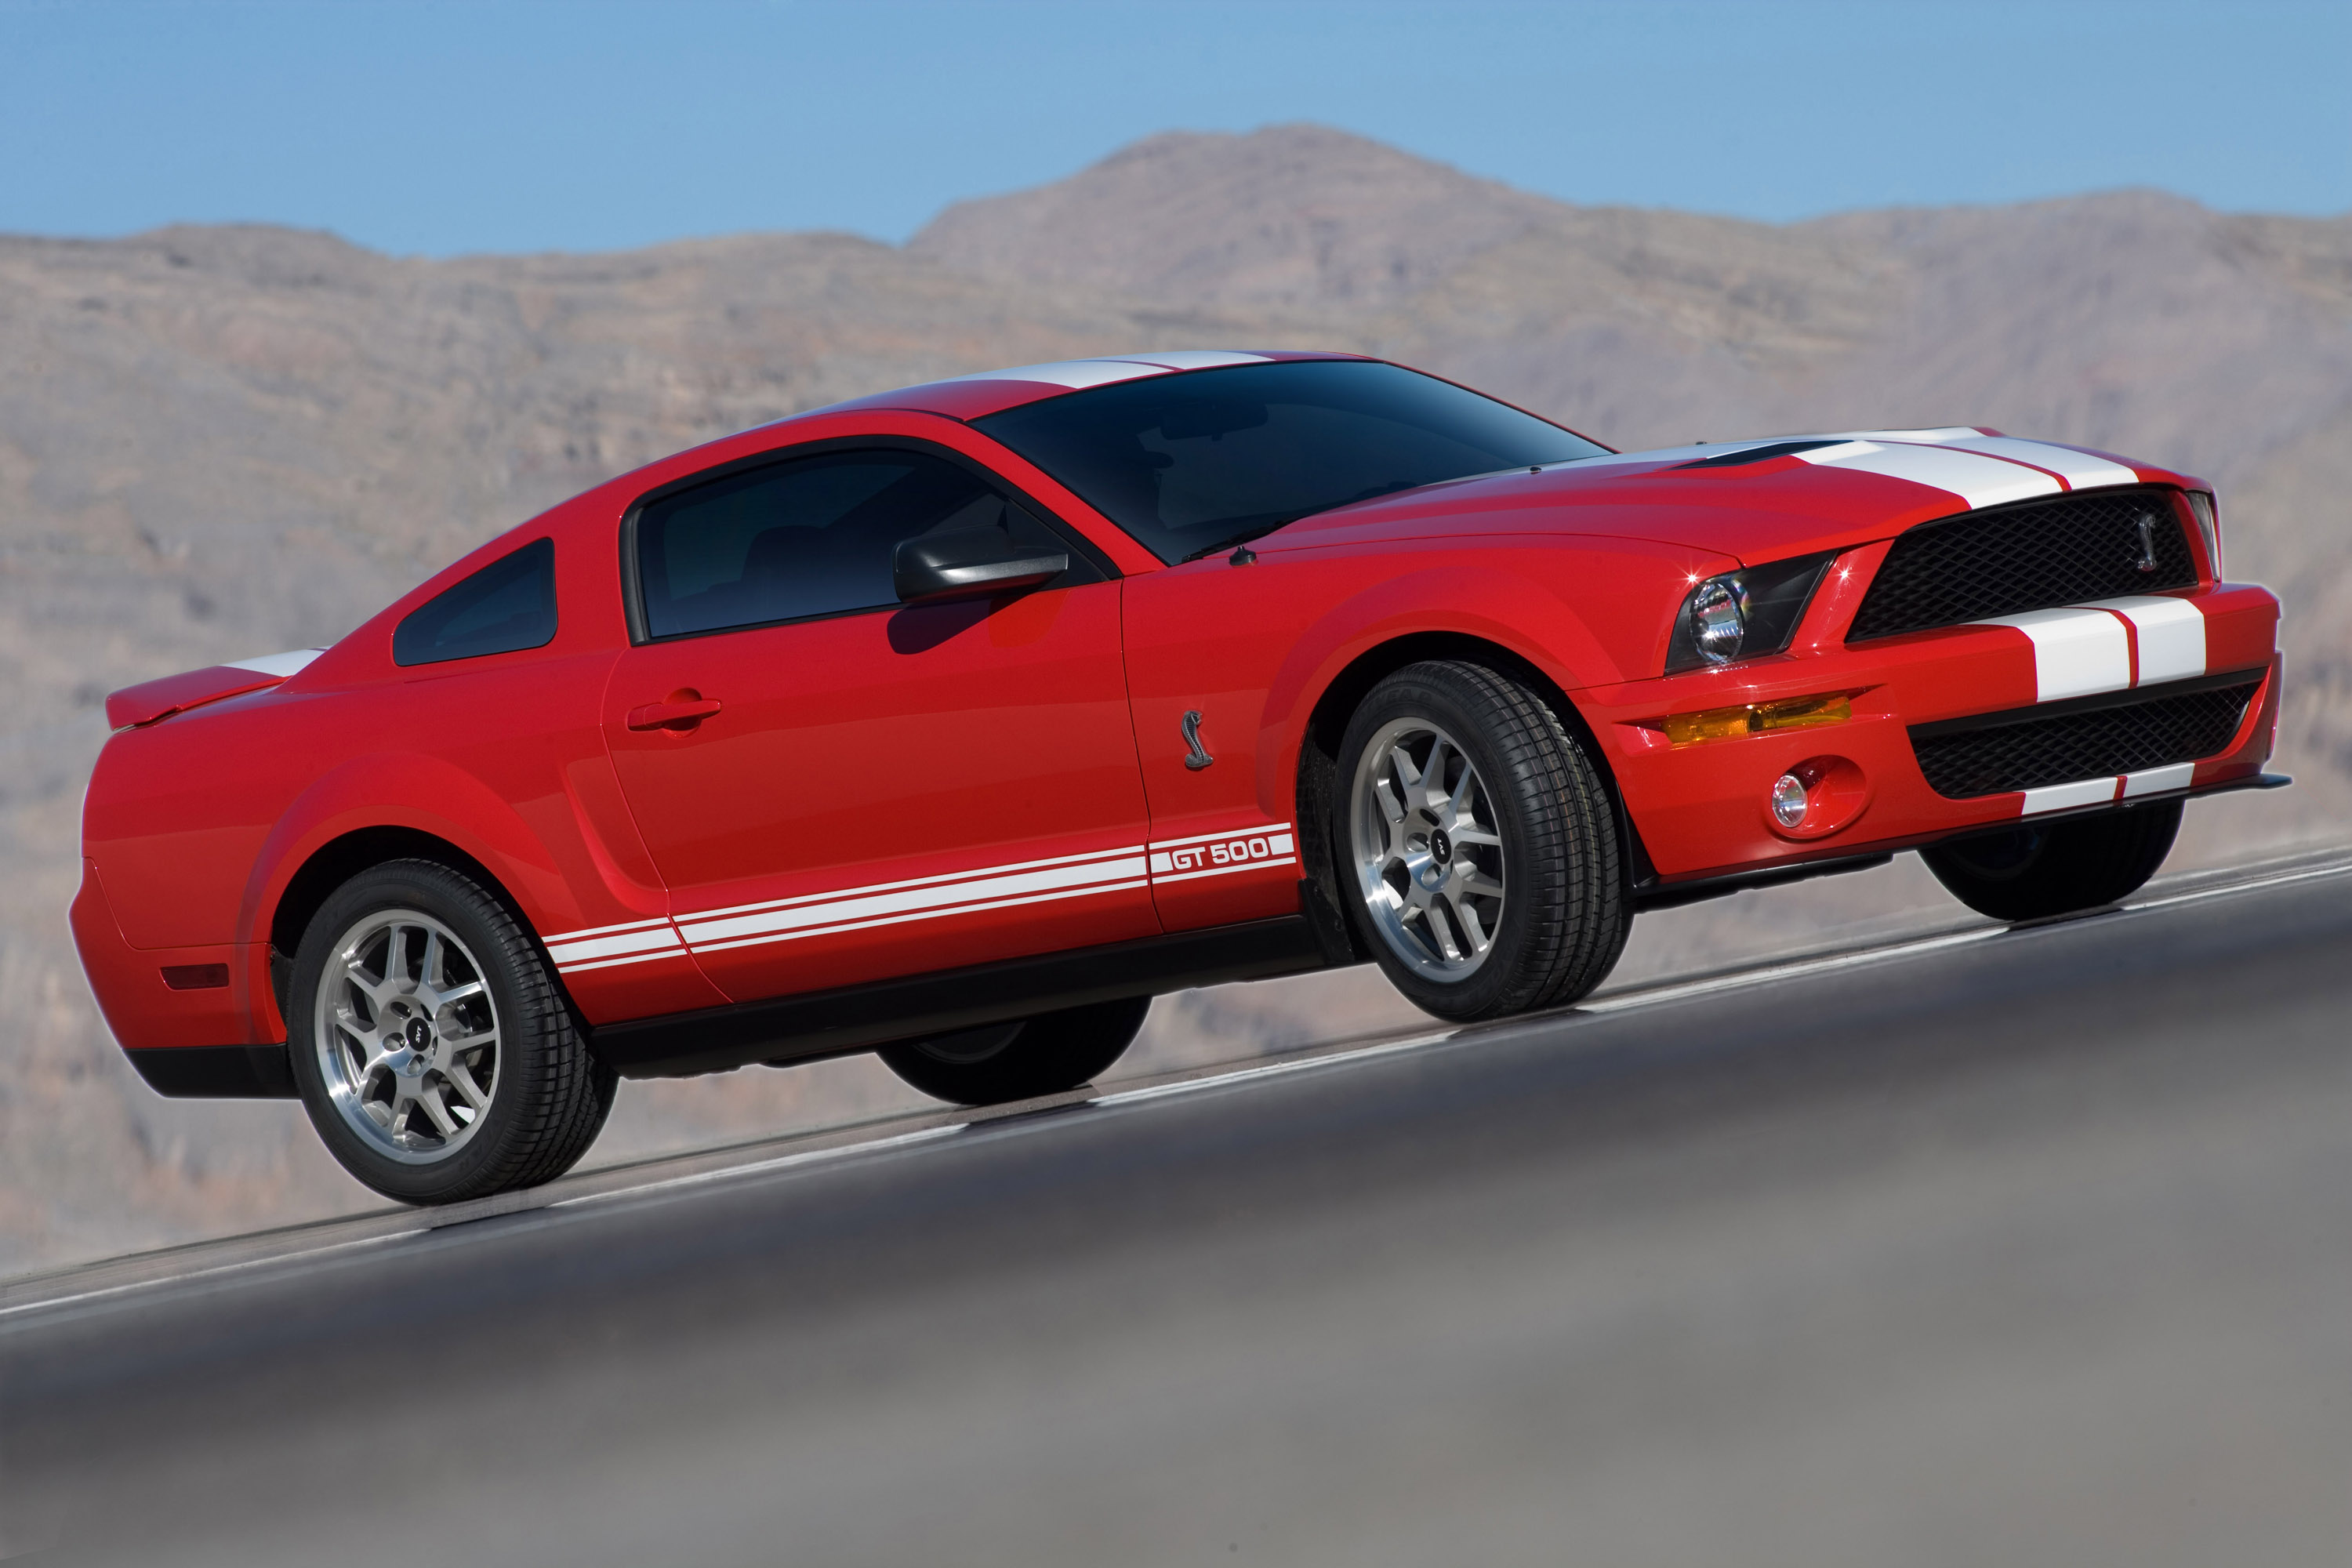 2007 Ford Mustang Shelby GT500 | Top Speed